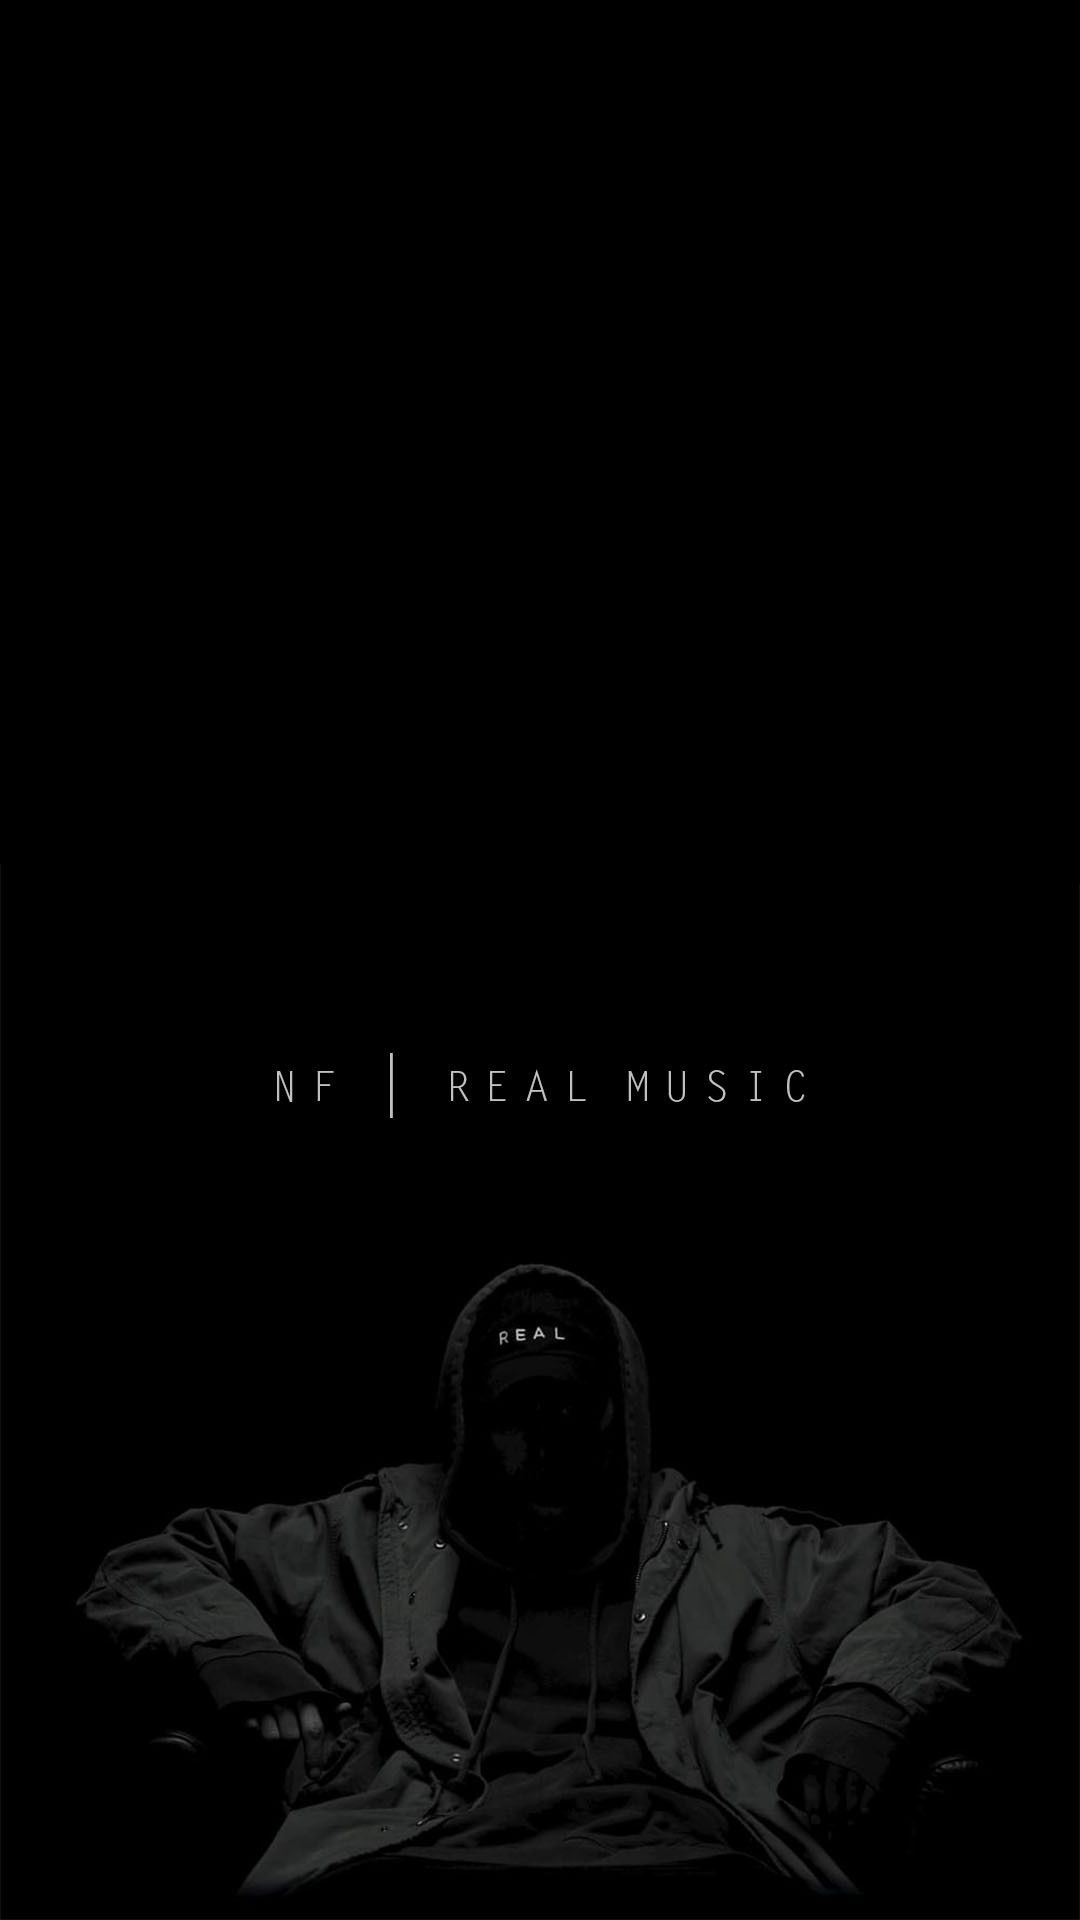 NF Green Lights Phone Wallpaper Nf real music, Nf quotes